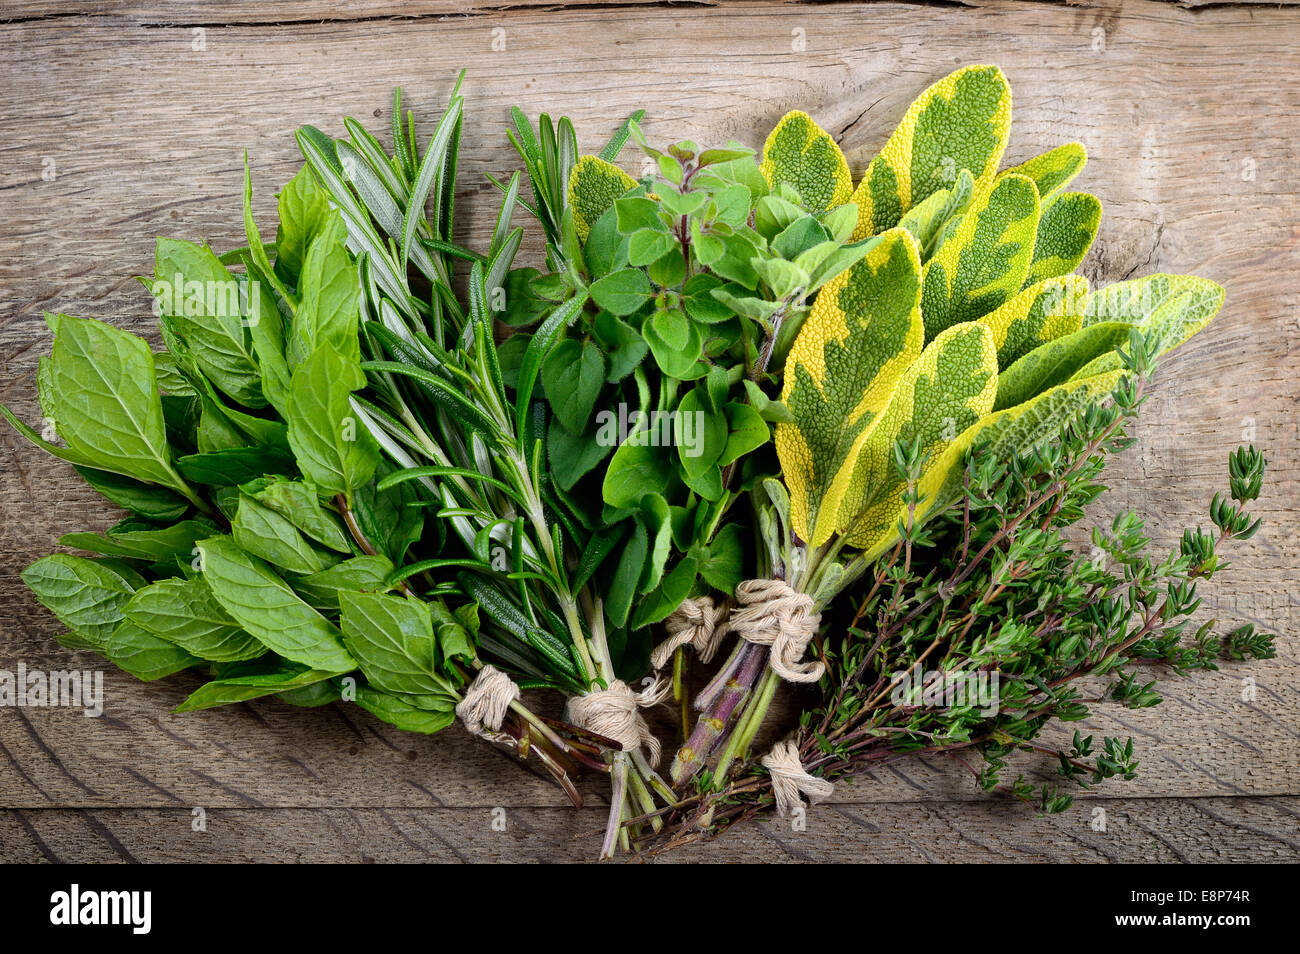 Freshly harvested herbs, bunch of fresh herbs over wooden background. - Stock Image